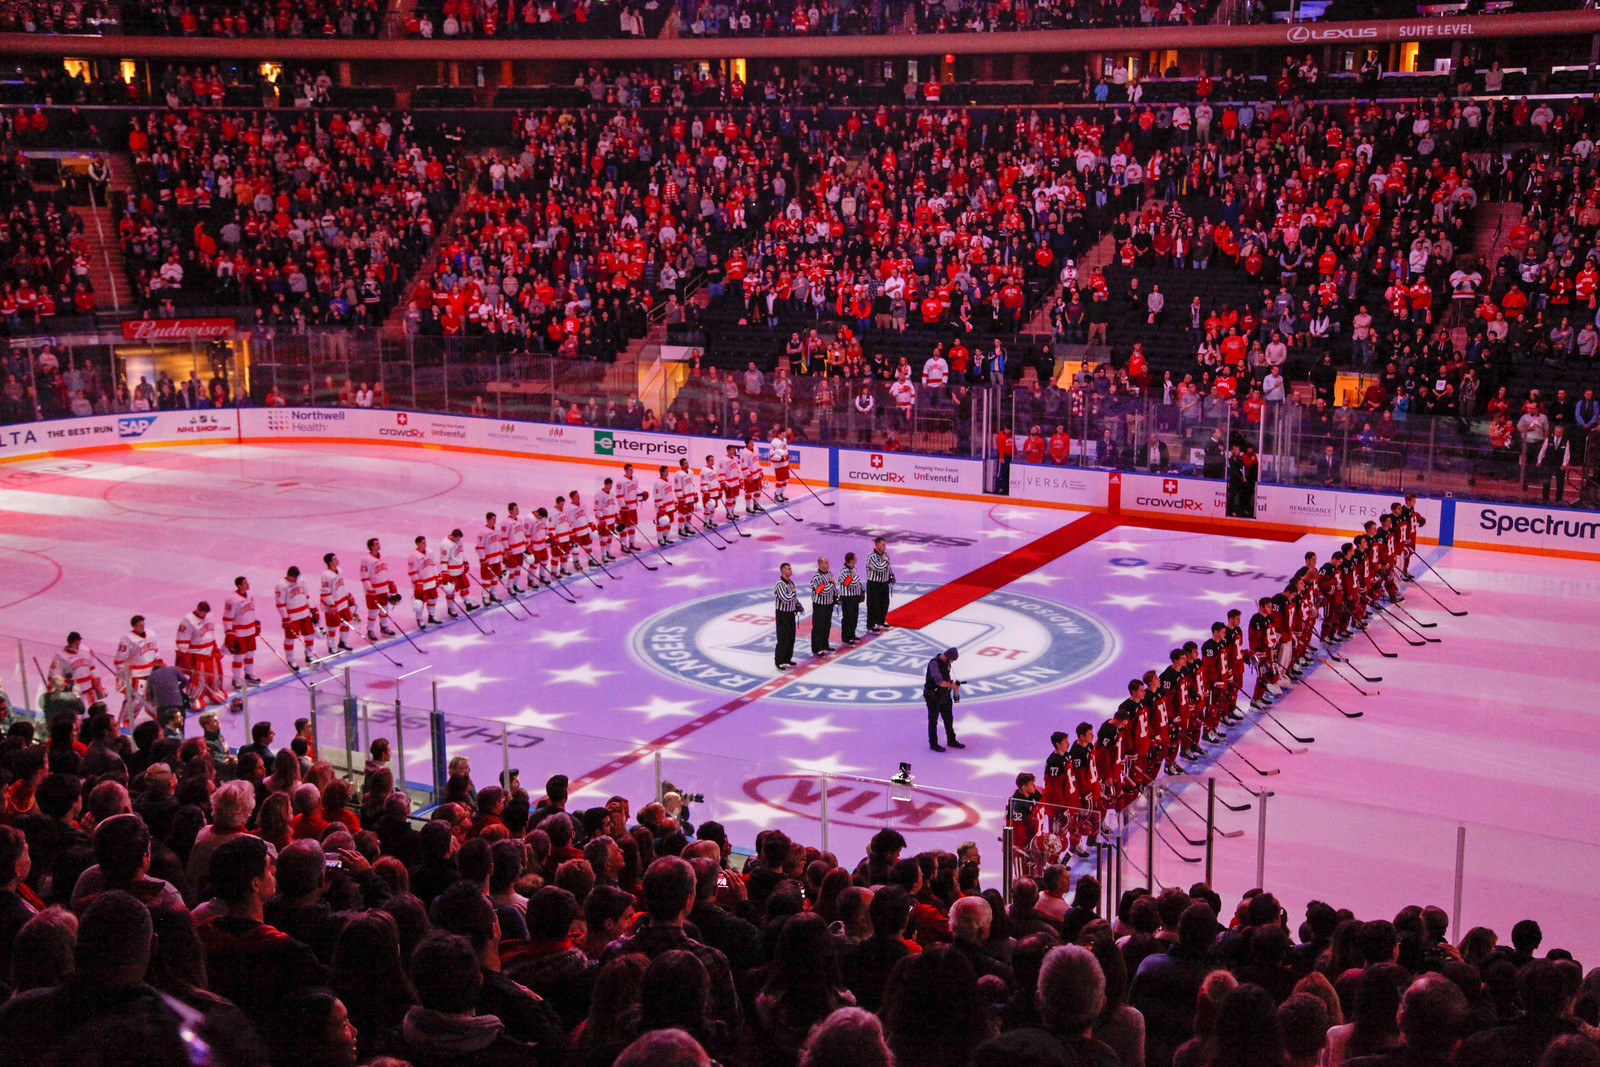 Storied rivals Harvard and Cornell met at Madison Square Garden for the first time in their 153-game history.